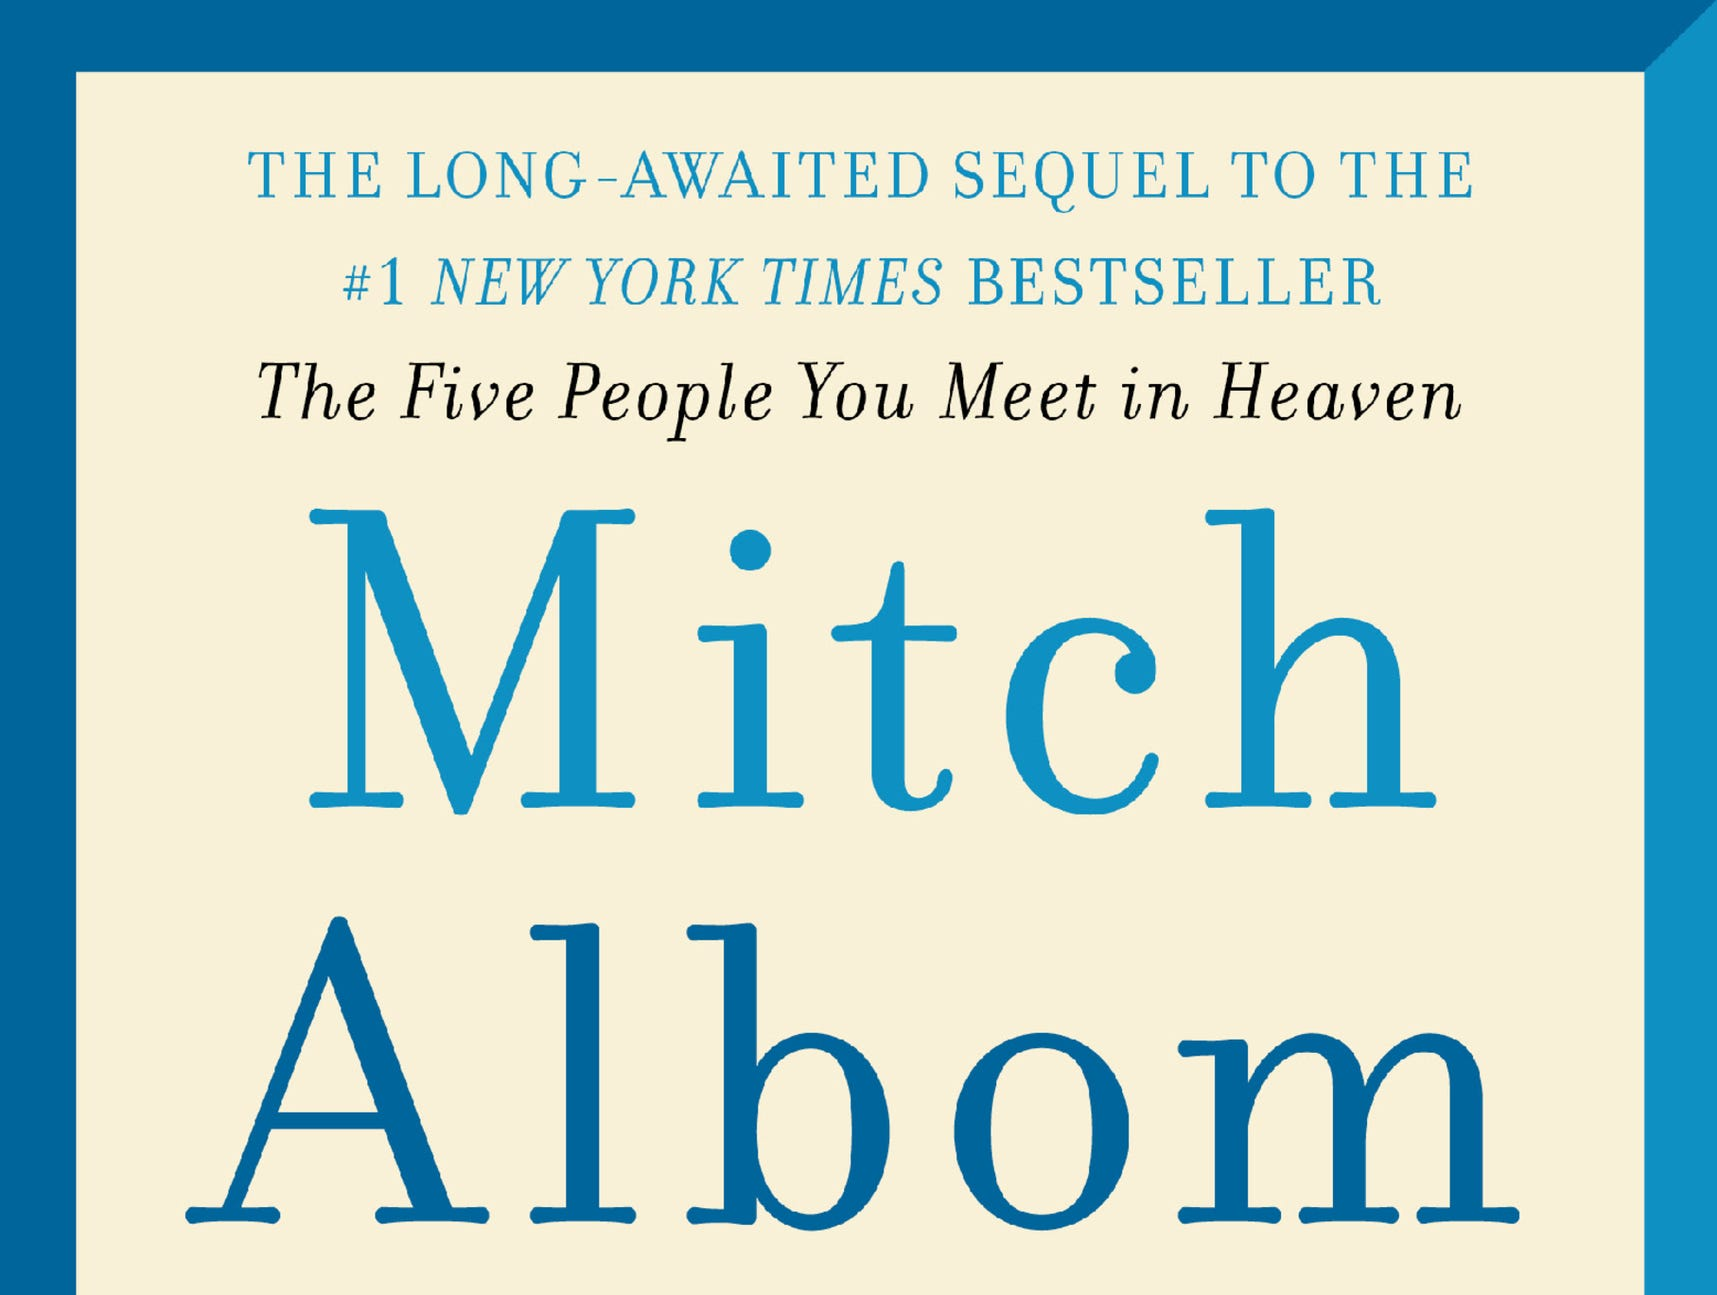 Mitch Albom has published another bestseller in 'The Next Person'